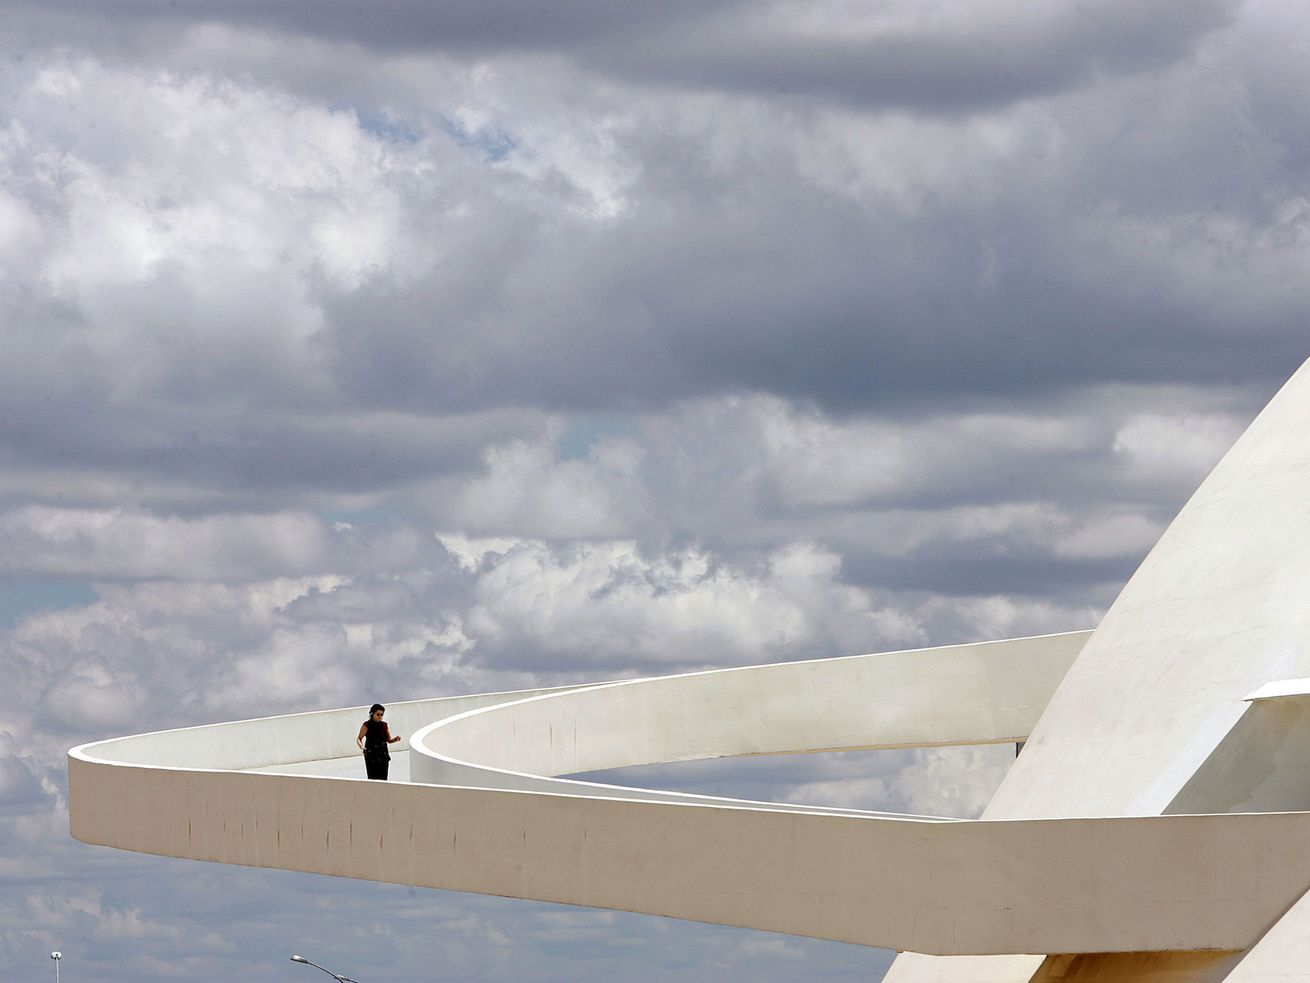 The ramp of Brasilia's National Museum, deigned by Brazilian architect Oscar Niemeyer.